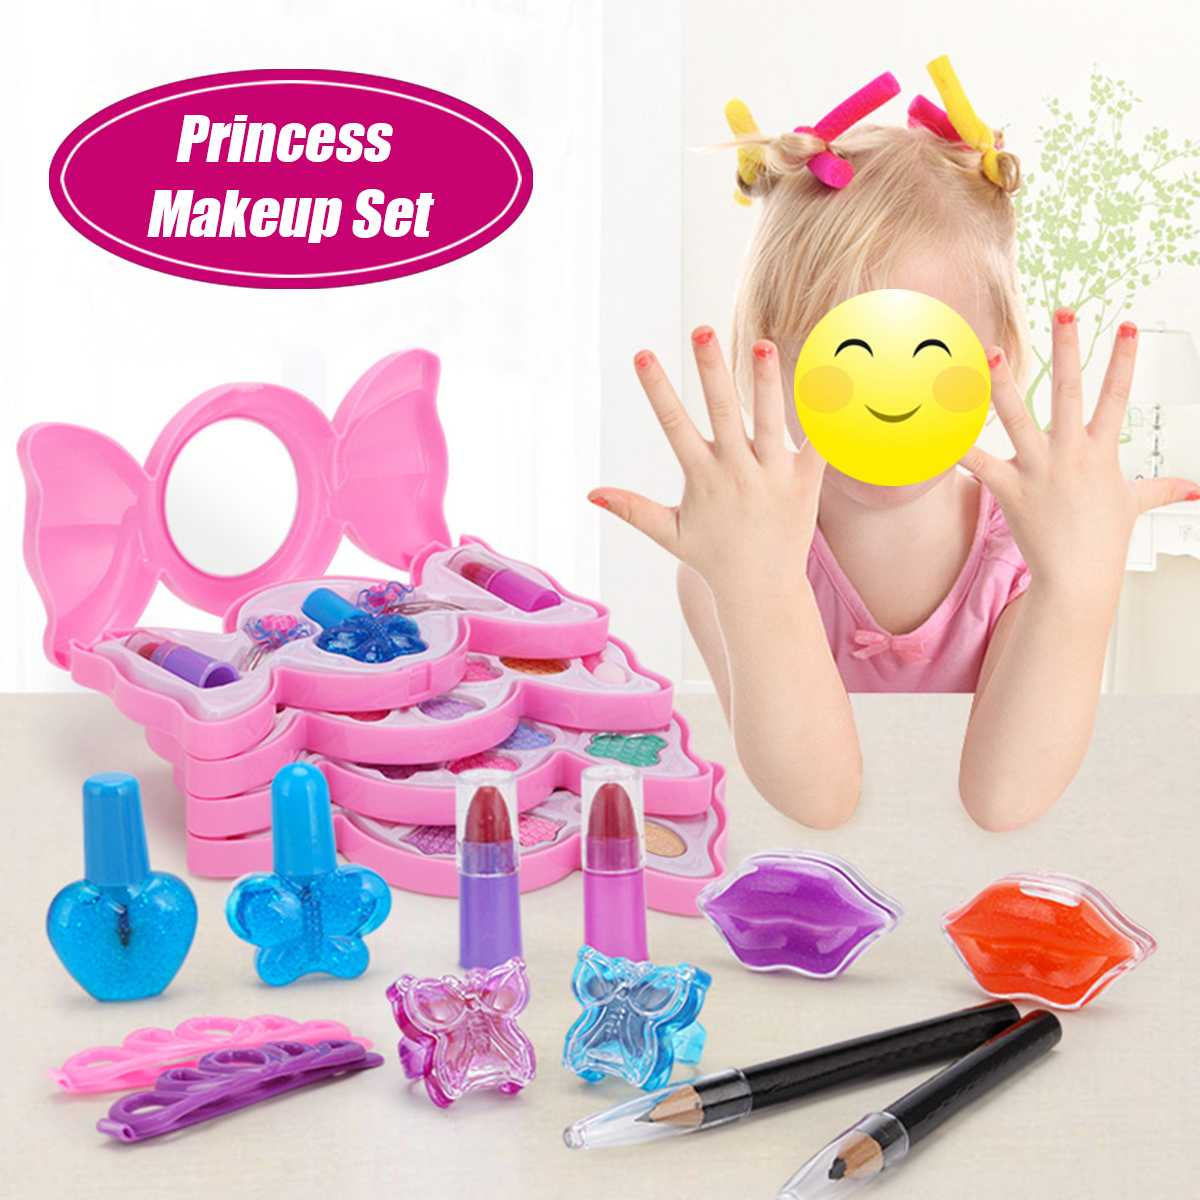 3/4/5 Layers Washable Princess Makeup Set For Girls Cosmetic Toys Kit Eyeshadow Lip Gloss Blushes Face Makeup Party Dressing